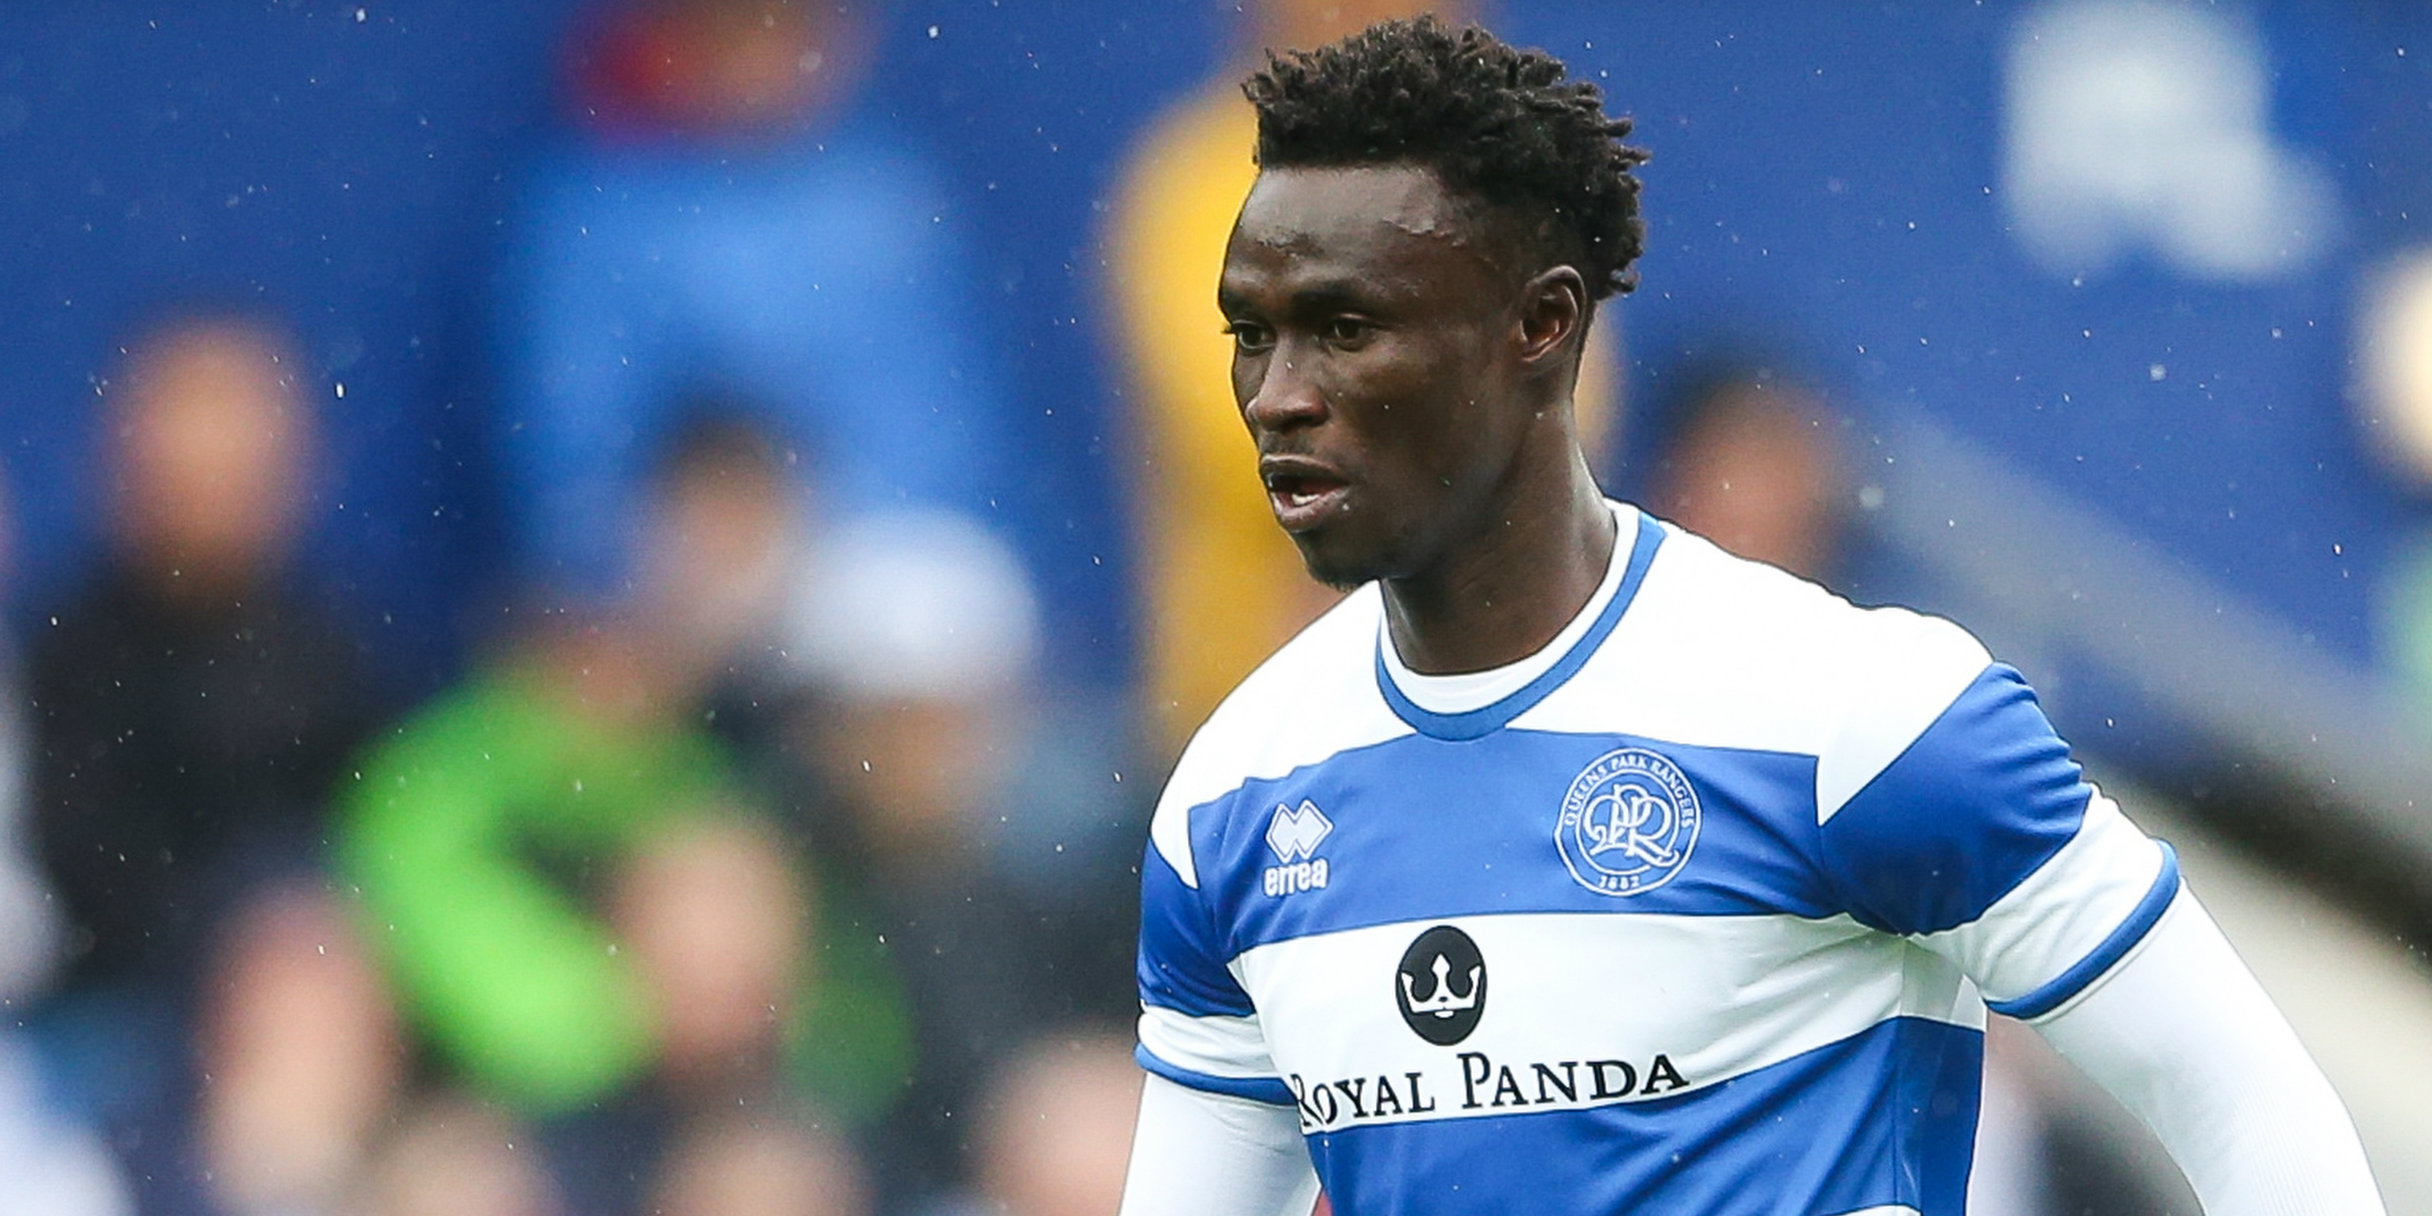 QPR hopeful Sylla will be fit for Fulham game